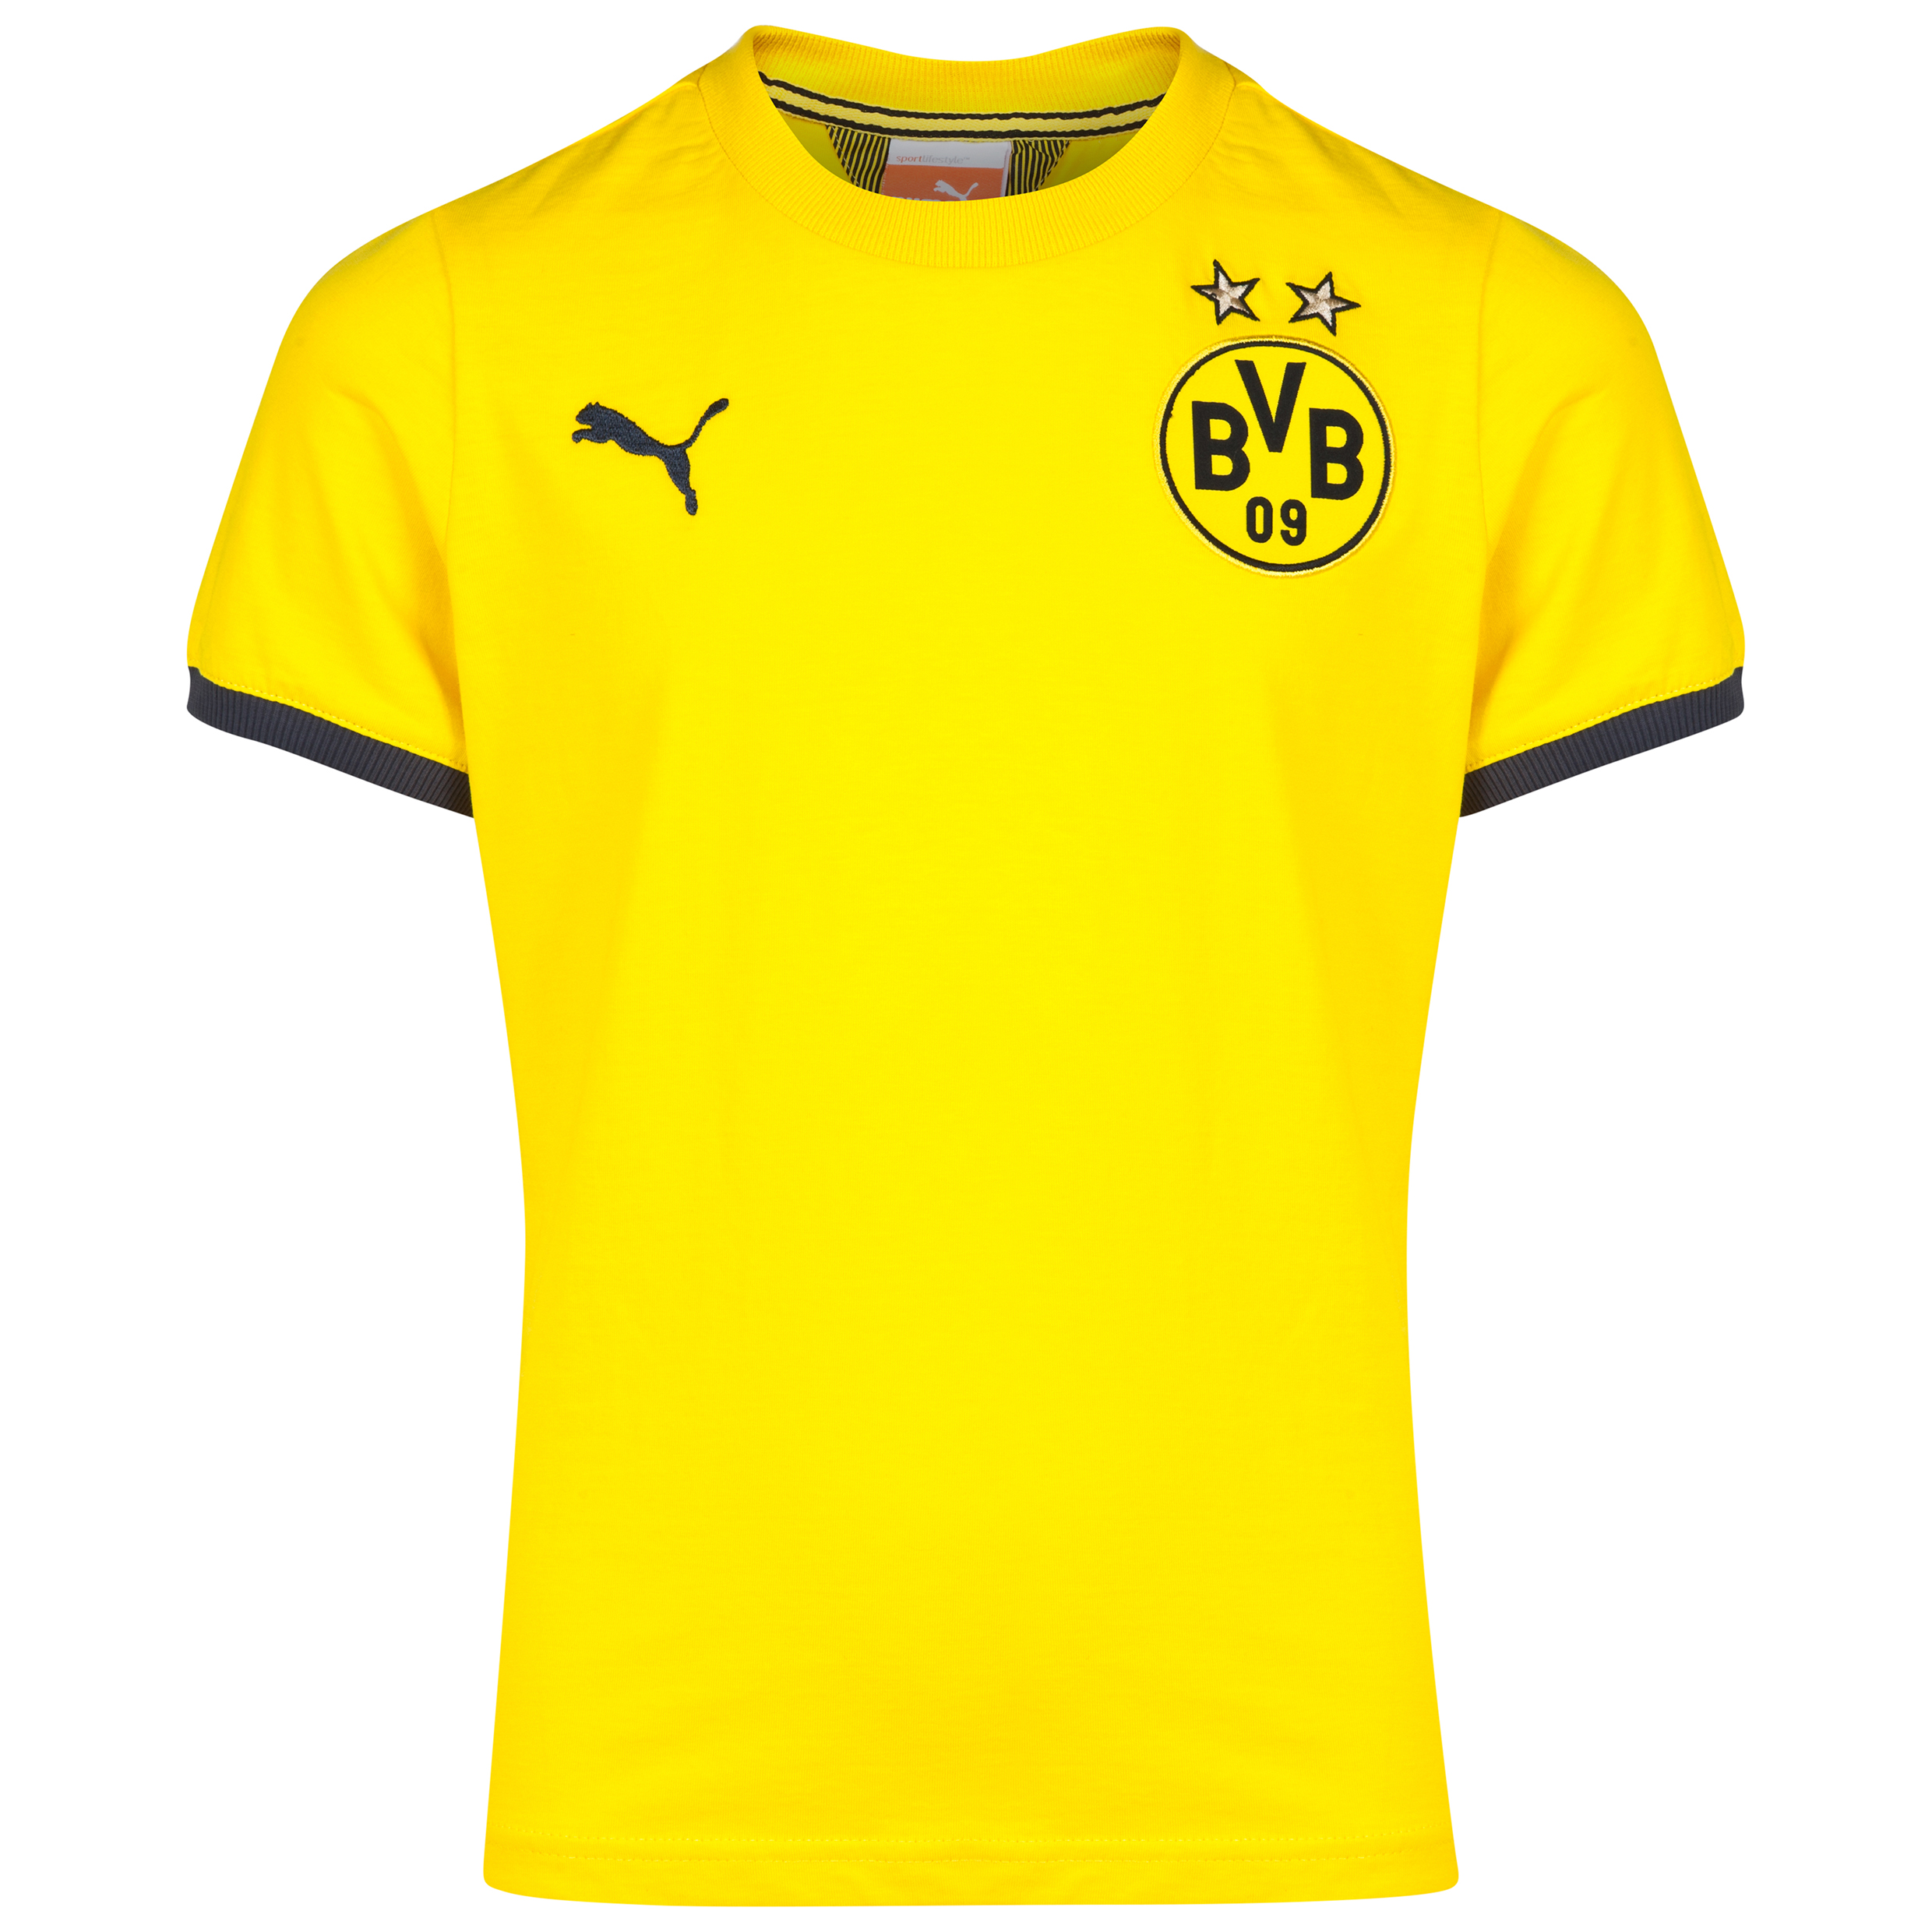 BVB T7 Cotton T-Shirt - Kids